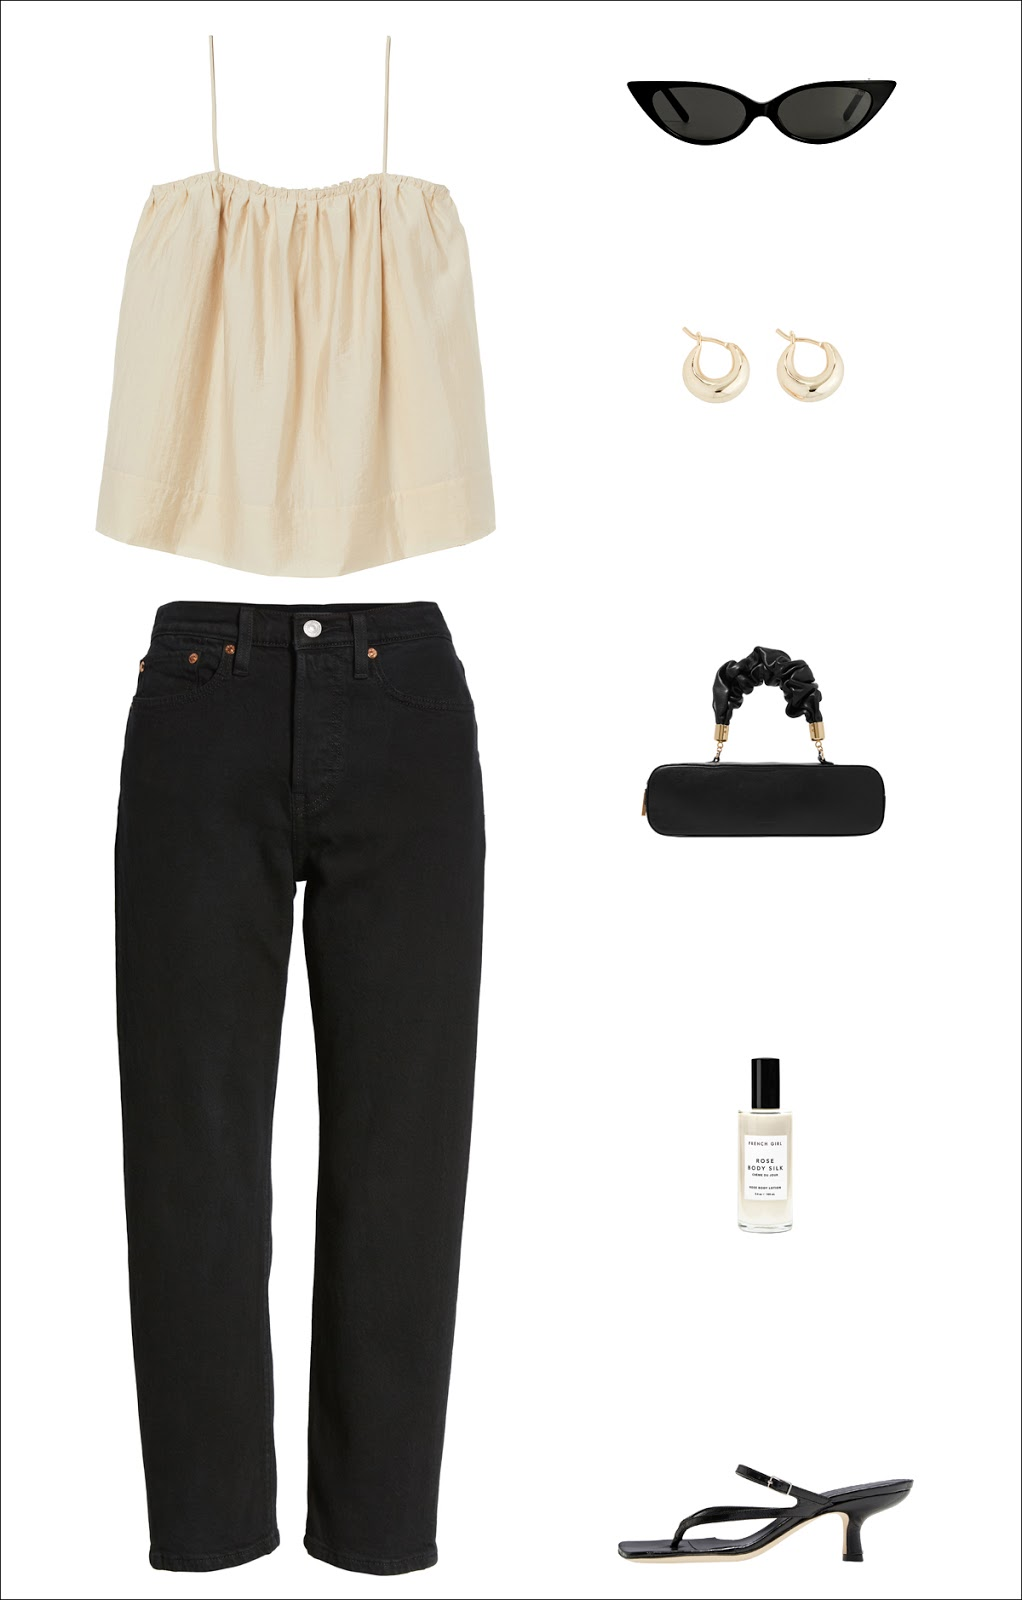 End-of-Summer Outfit Idea: billowy cami tank top, black cat-eye sunglasses, dome hoop earrings, a fashion-forward mini bag, high-waisted black jeans, and strappy heeled sandals.